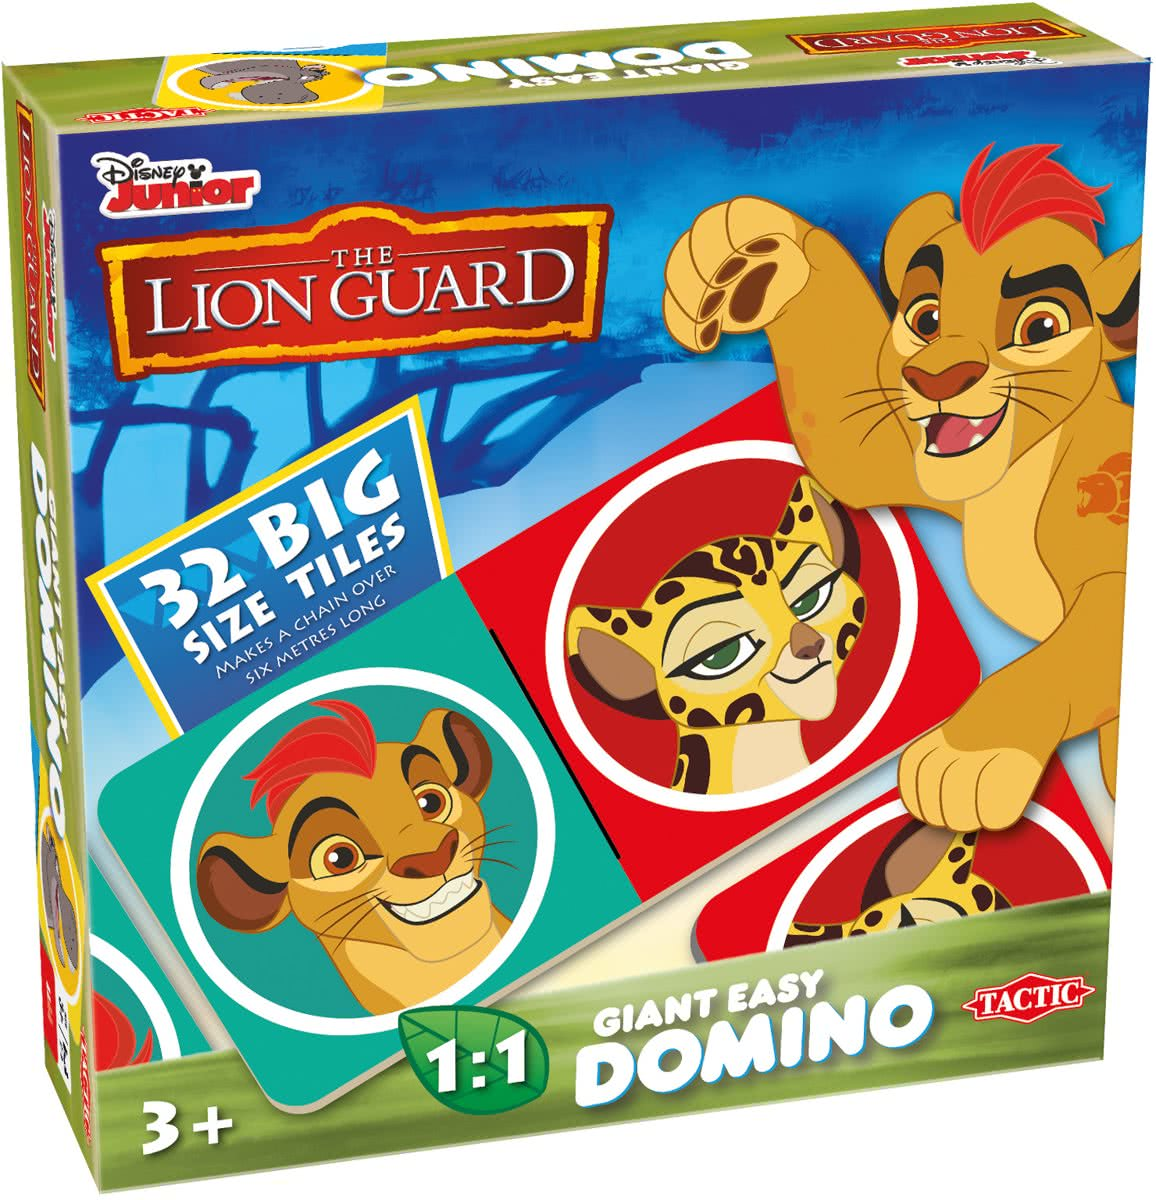 Lion Guard Giant Easy Domino